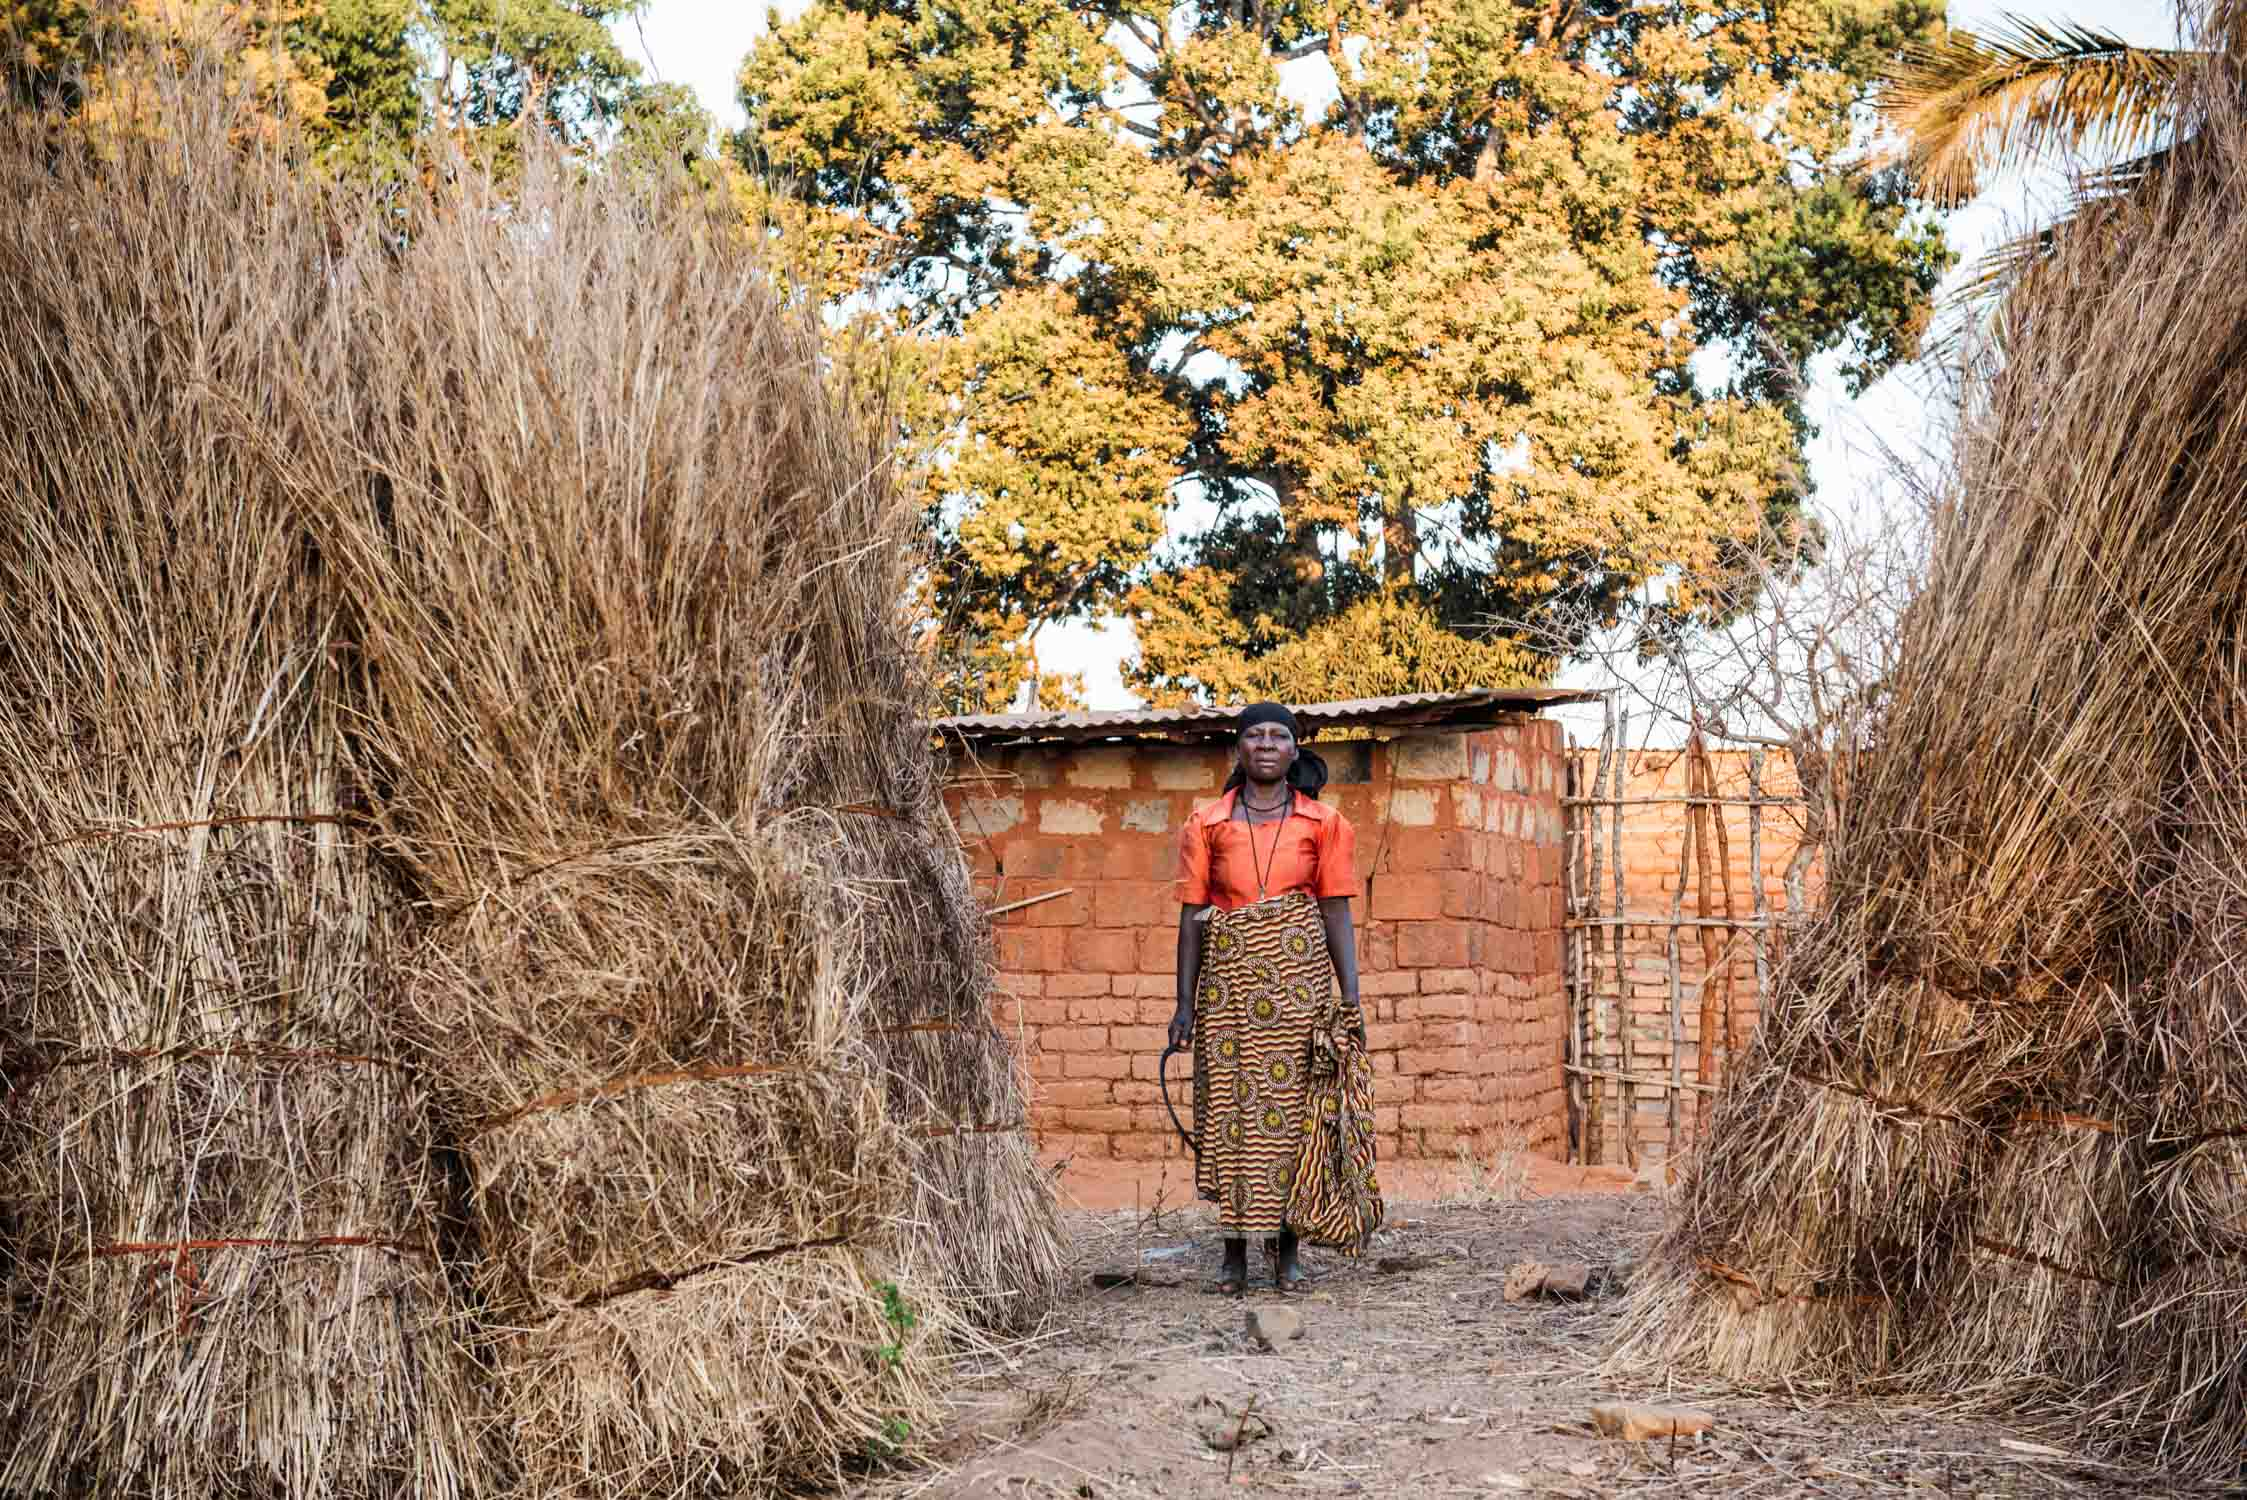 A woman of Likuyu village with her harvest. The grass is mainly used to build traditional houses.